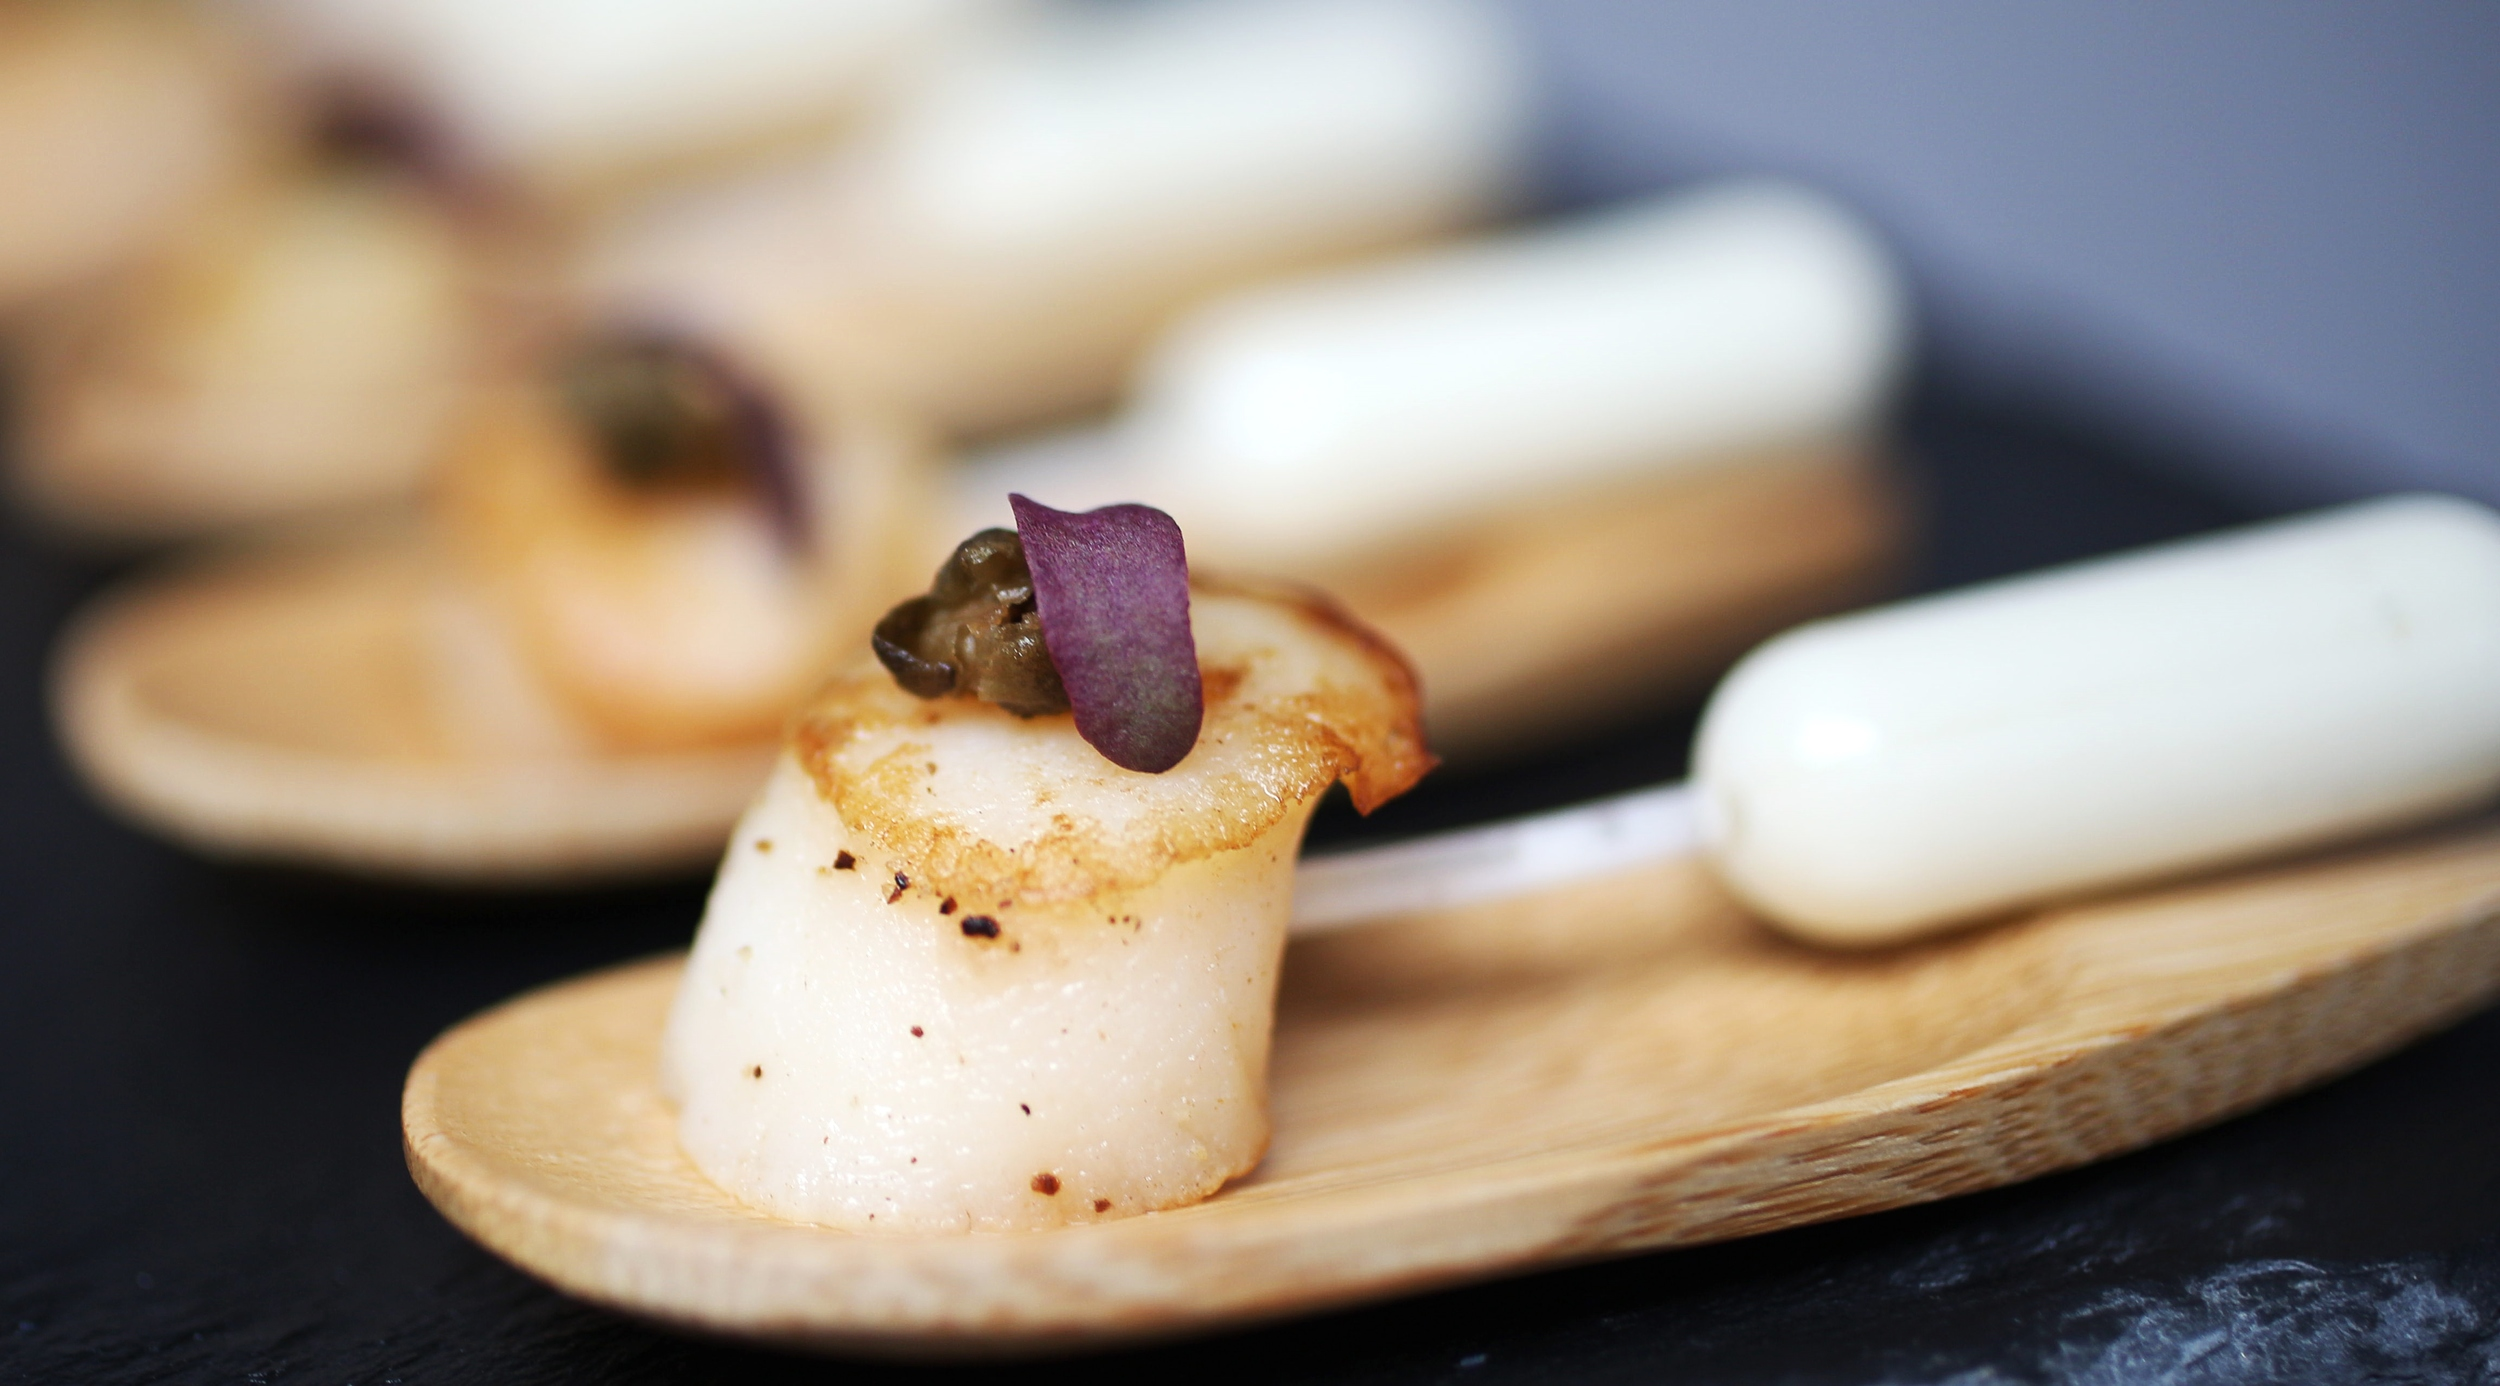 grilled scallops pipettes filled with champagne butter sauce and decorated with red mustard cress.jpg